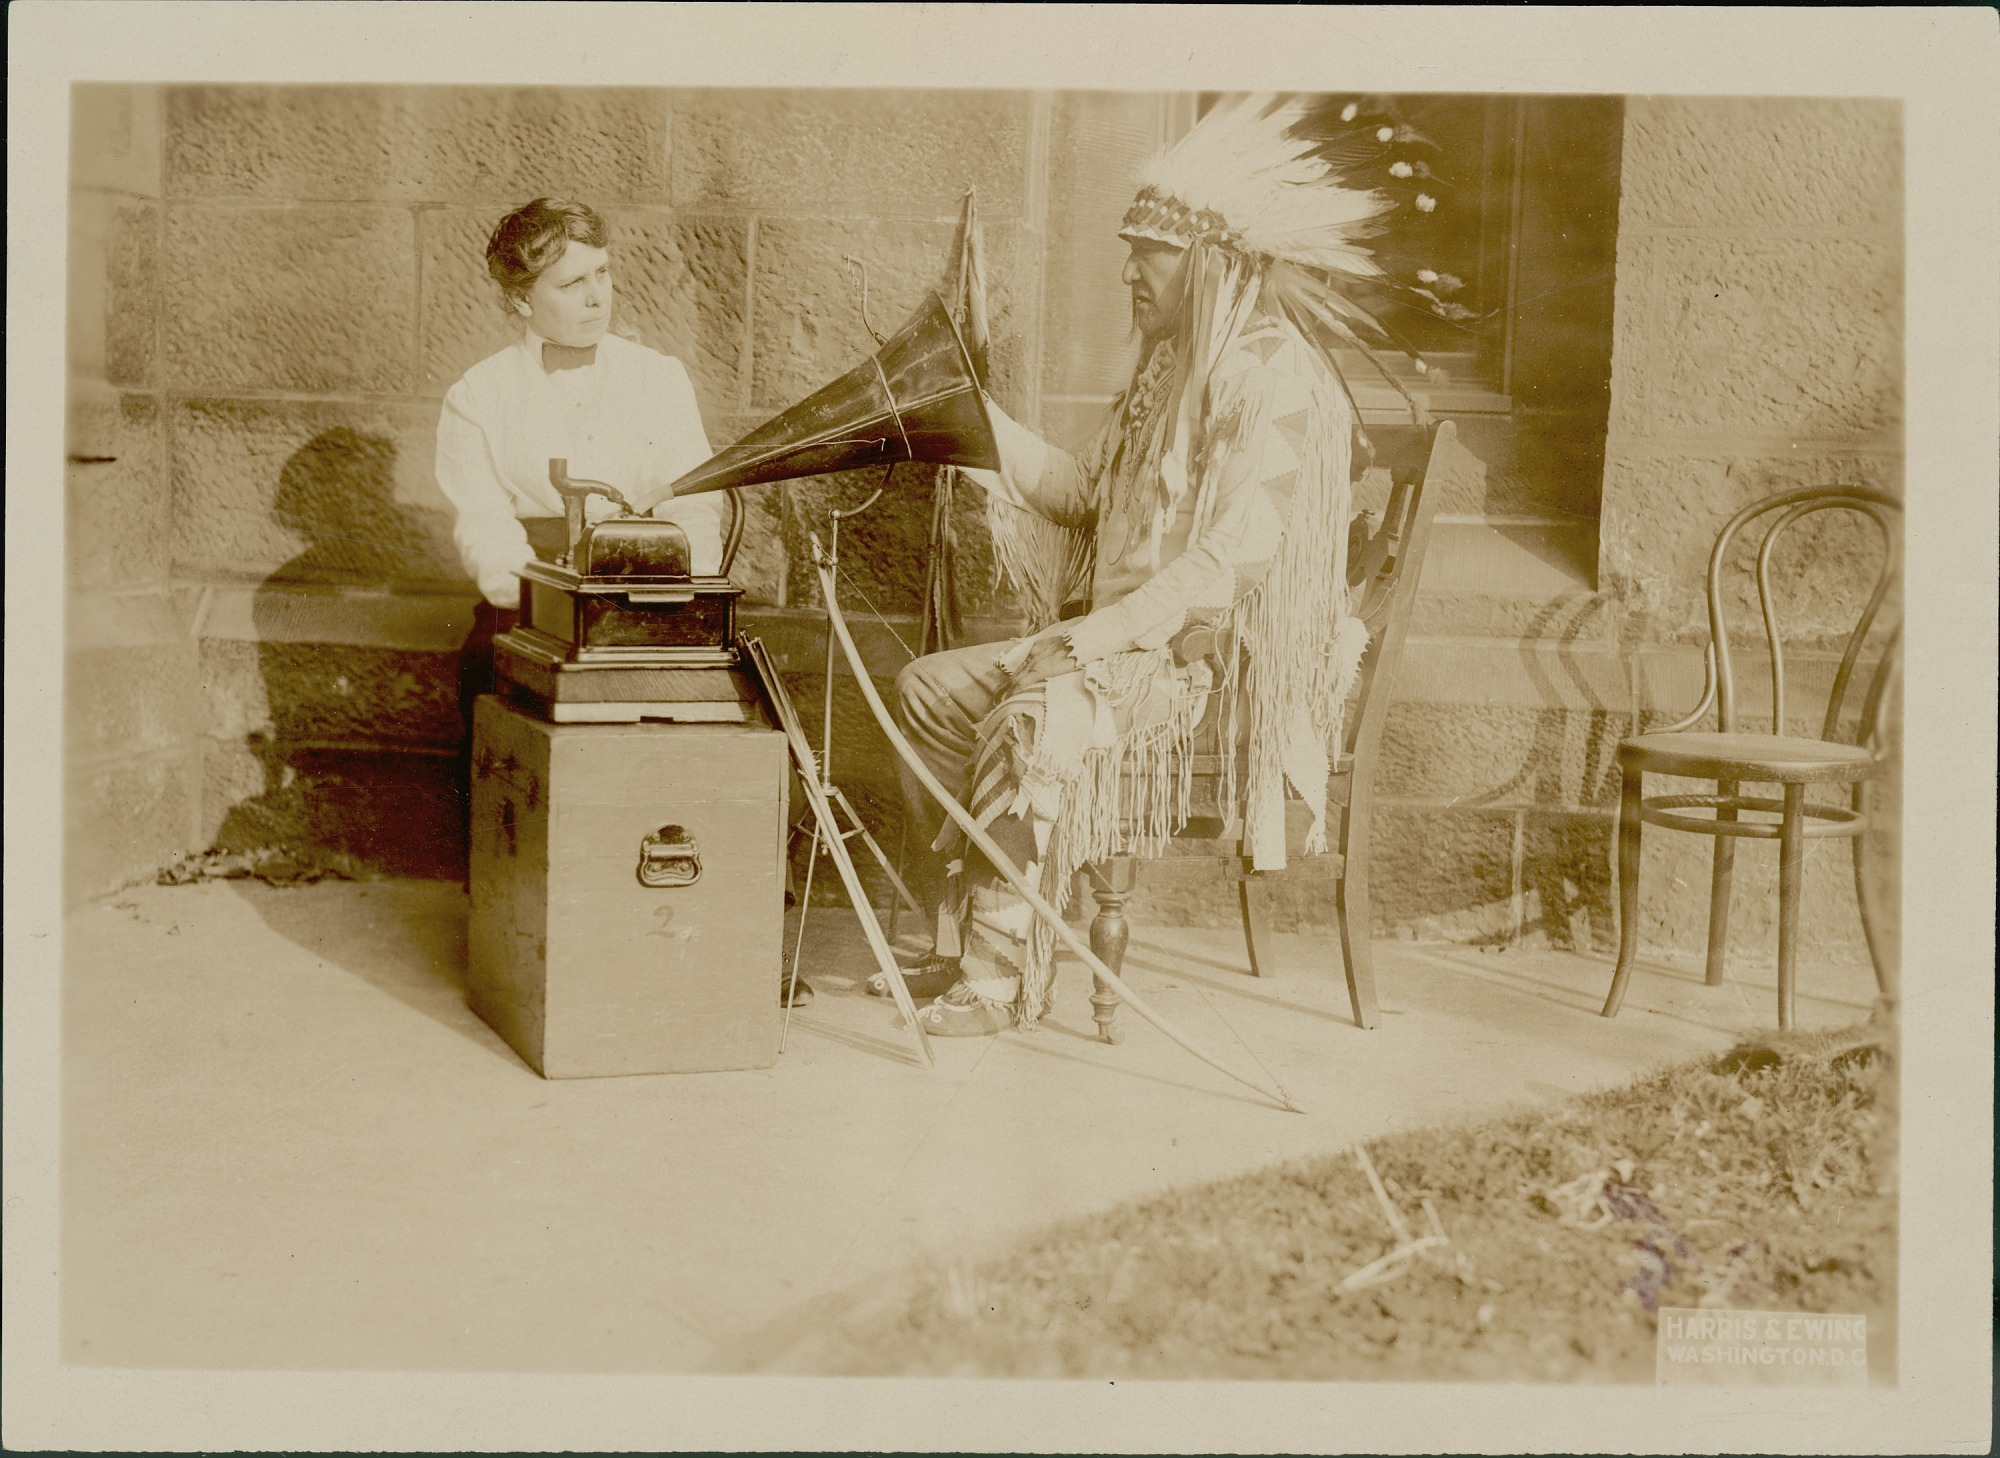 images for Mountain Chief, Chief of Montana Blackfeet, in Native Dress With Bow, Arrows, and Lance, Listening to Song Being Played On Phonograph and Interpreting It in Sign Language to Frances Densmore, Ethnologist MAR 1916